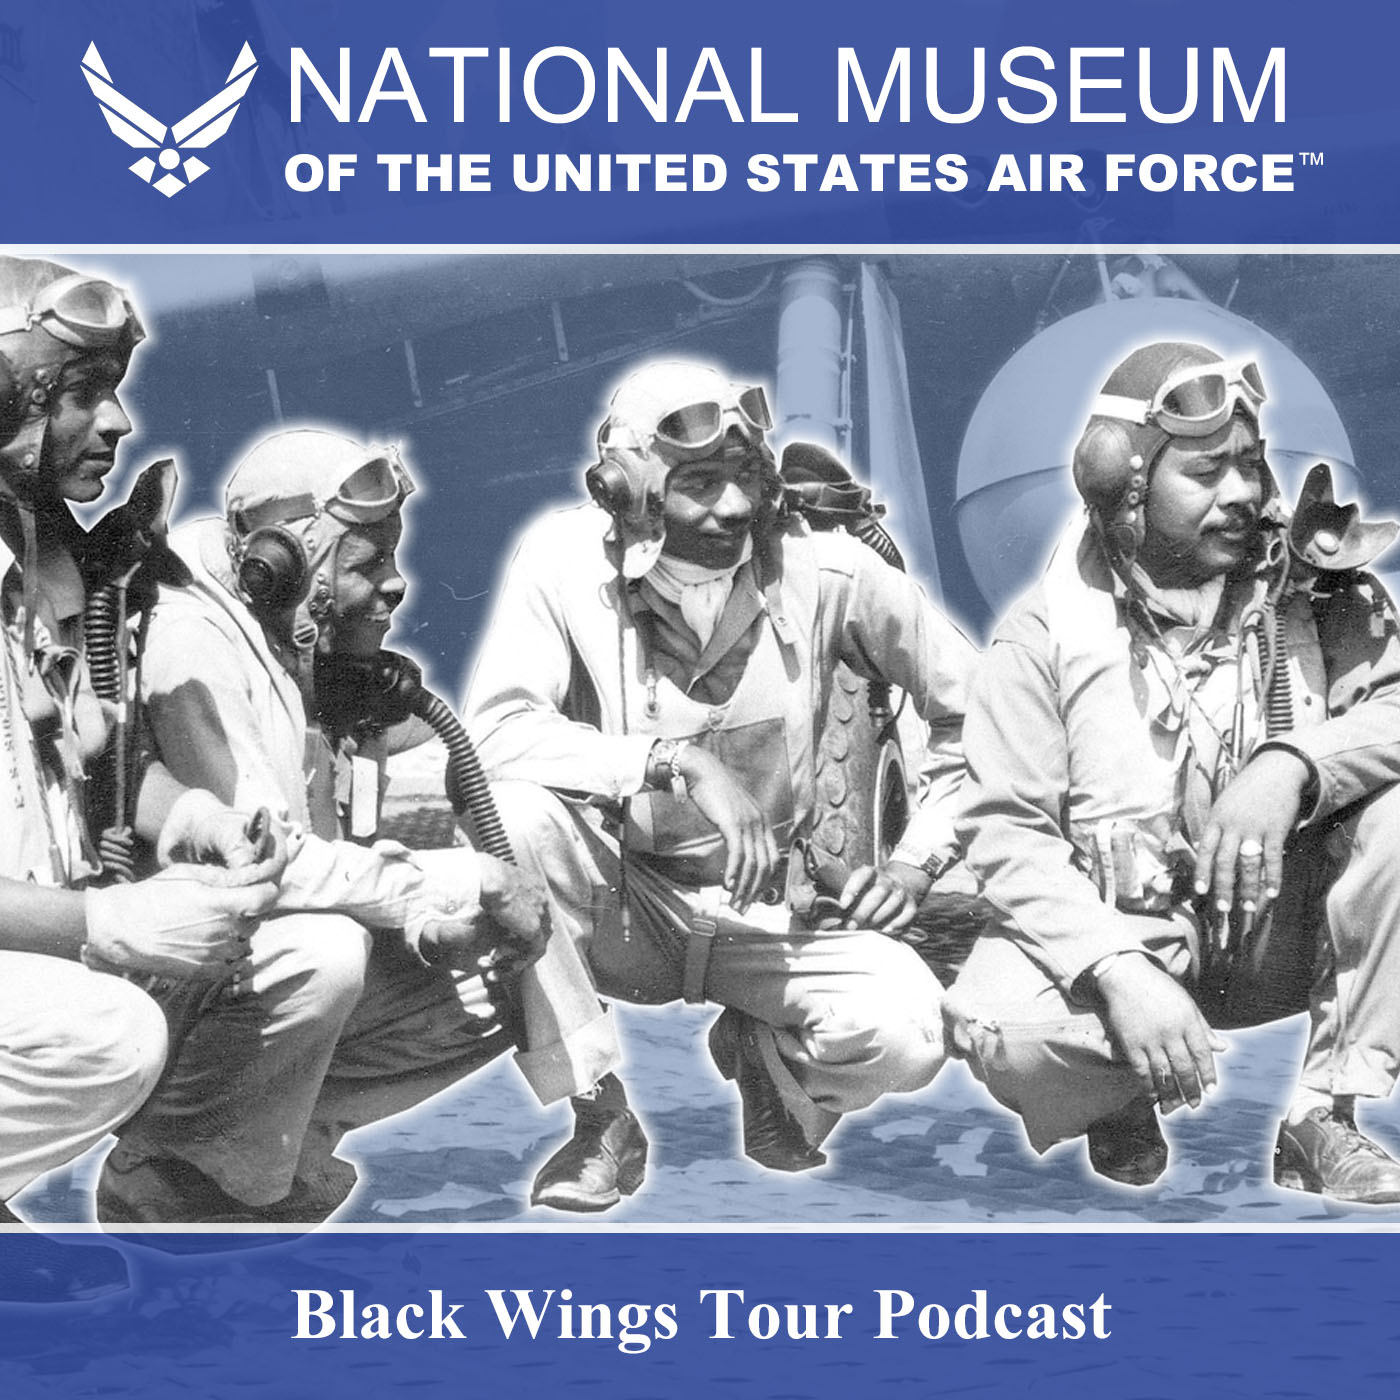 Black Wings Tour Podcast